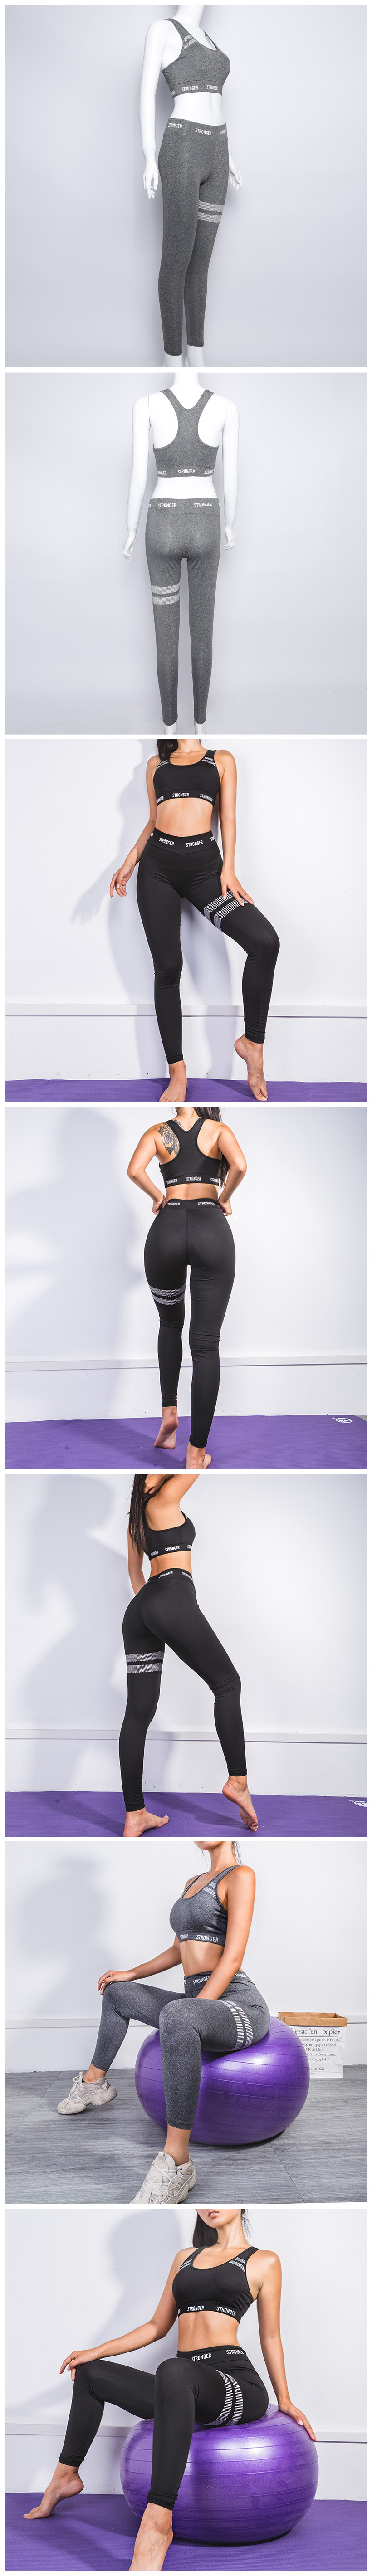 Sports Custom Workout Yoga Sets Clothes shark Fitness Yoga Leggings Seamless Gym Tights and Sports Bra Set For Women